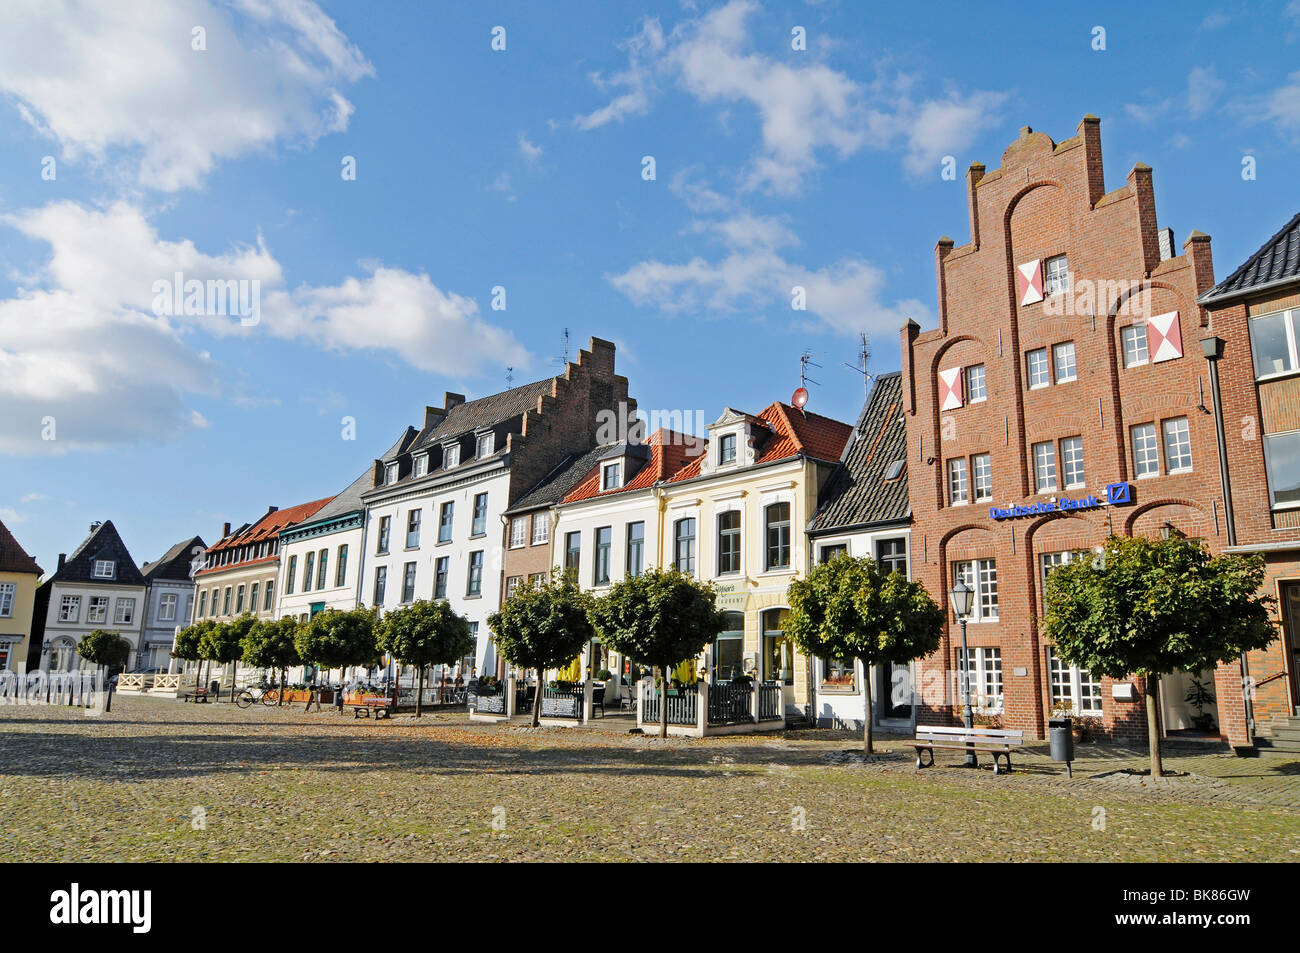 Gothic town hall, town hall square, brick building, historic building, Kalkar, Lower Rhine, North Rhine-Westphalia, - Stock Image